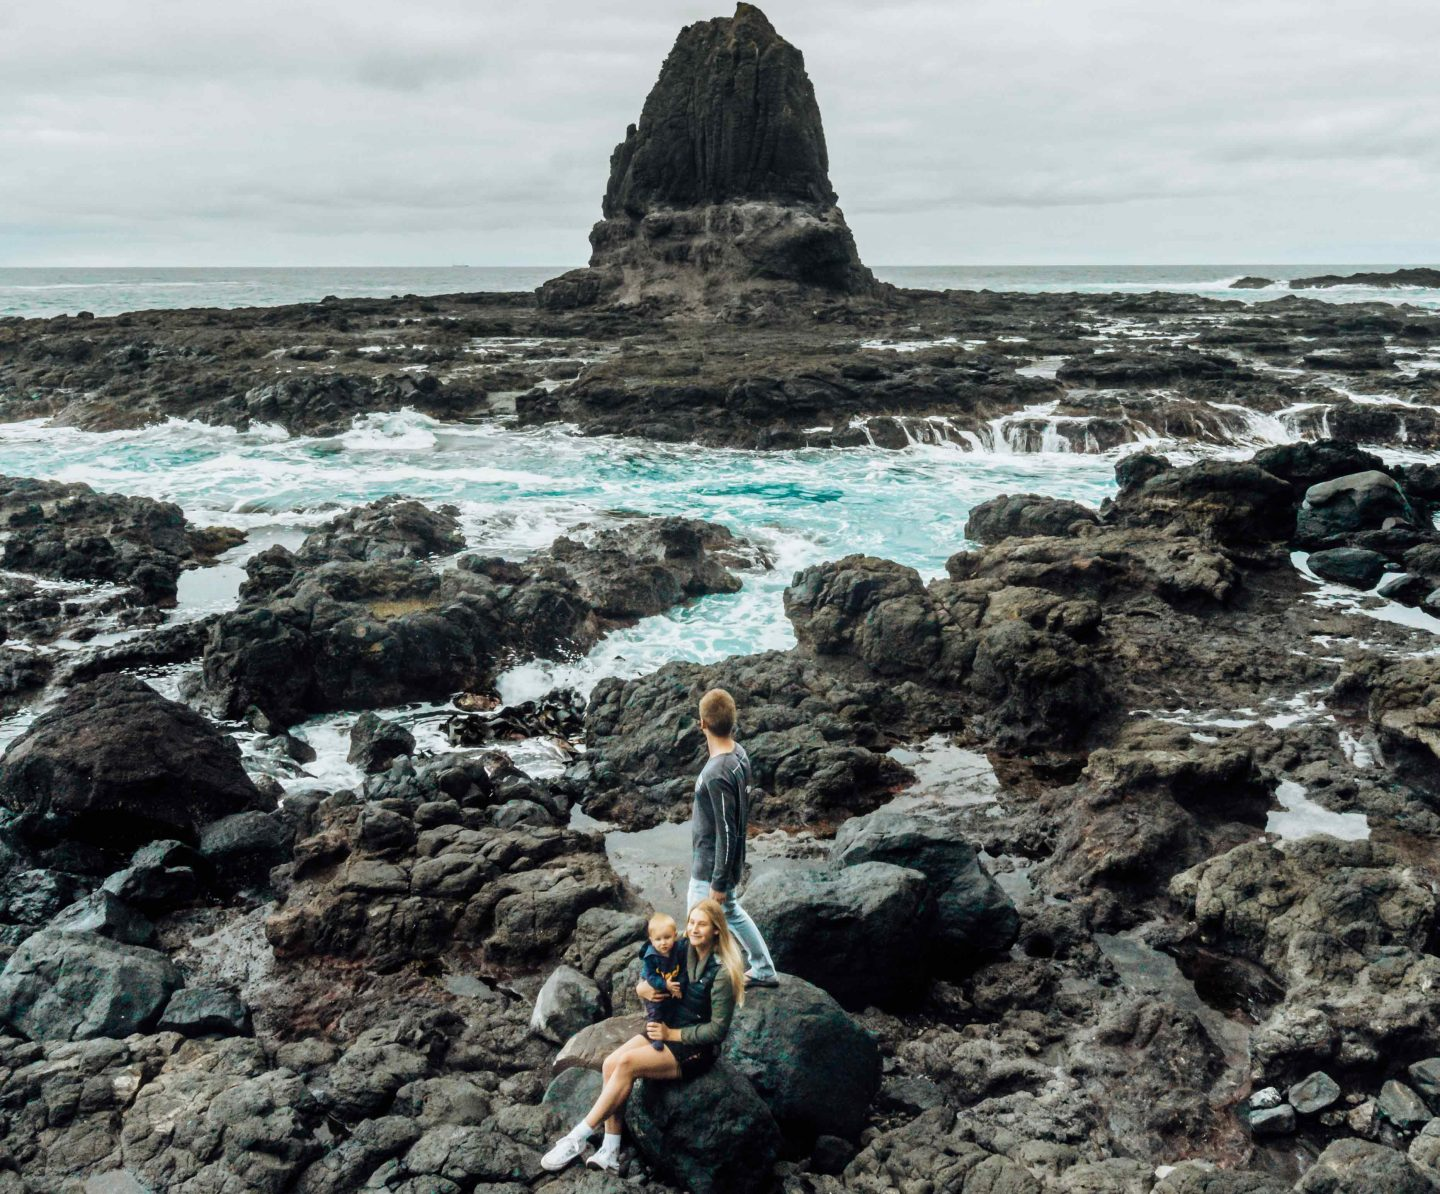 Cape Schanck - Live Life and Roam - Instagrammable Spots on the Mornington Peninsula